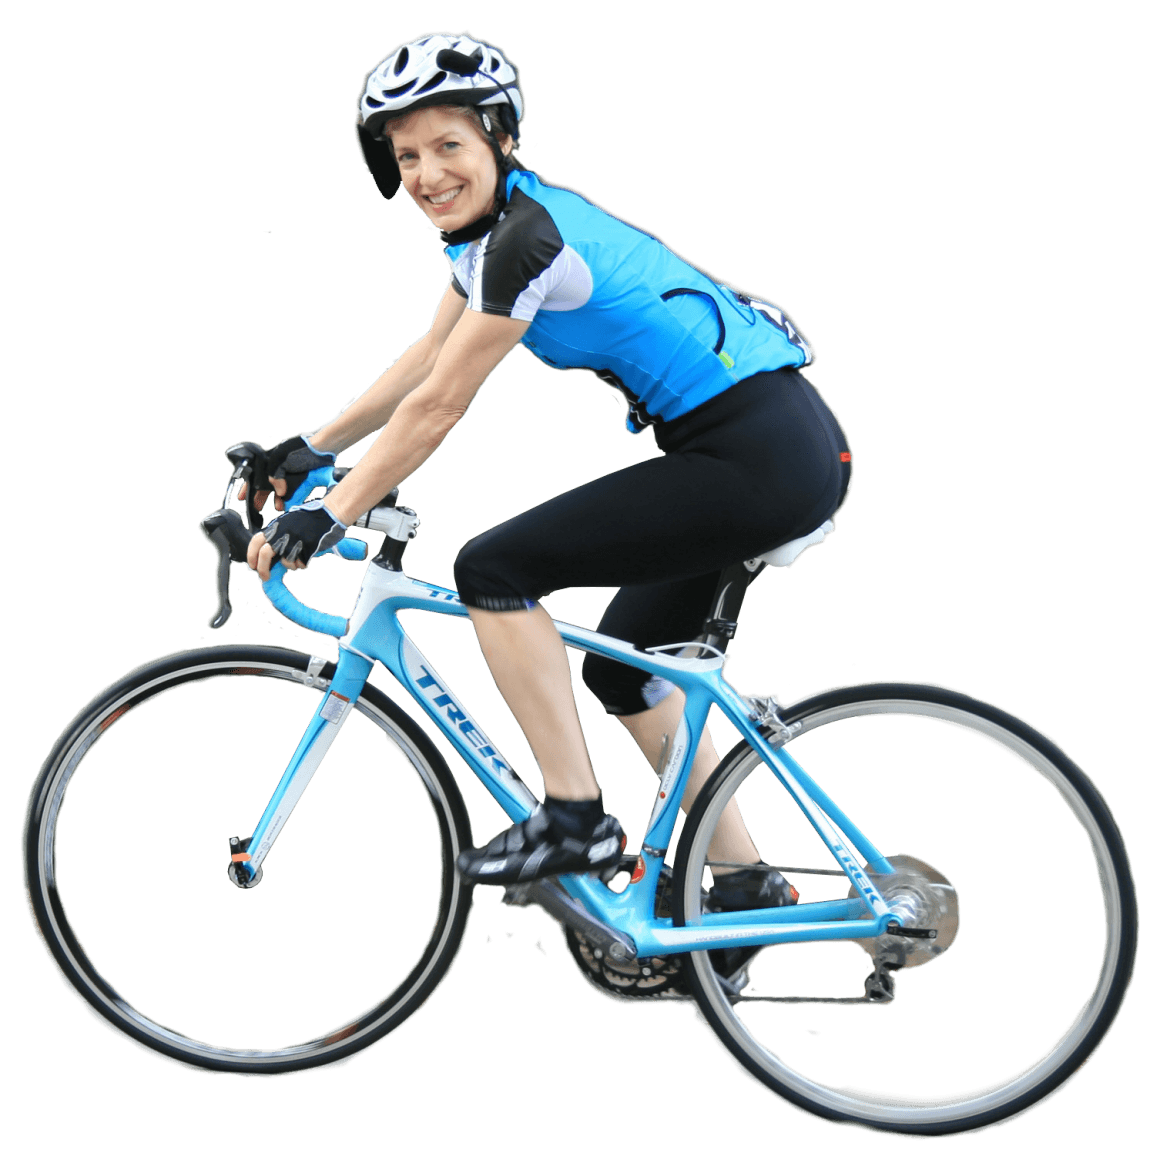 Woman On Bicycle Png Image PNG Image